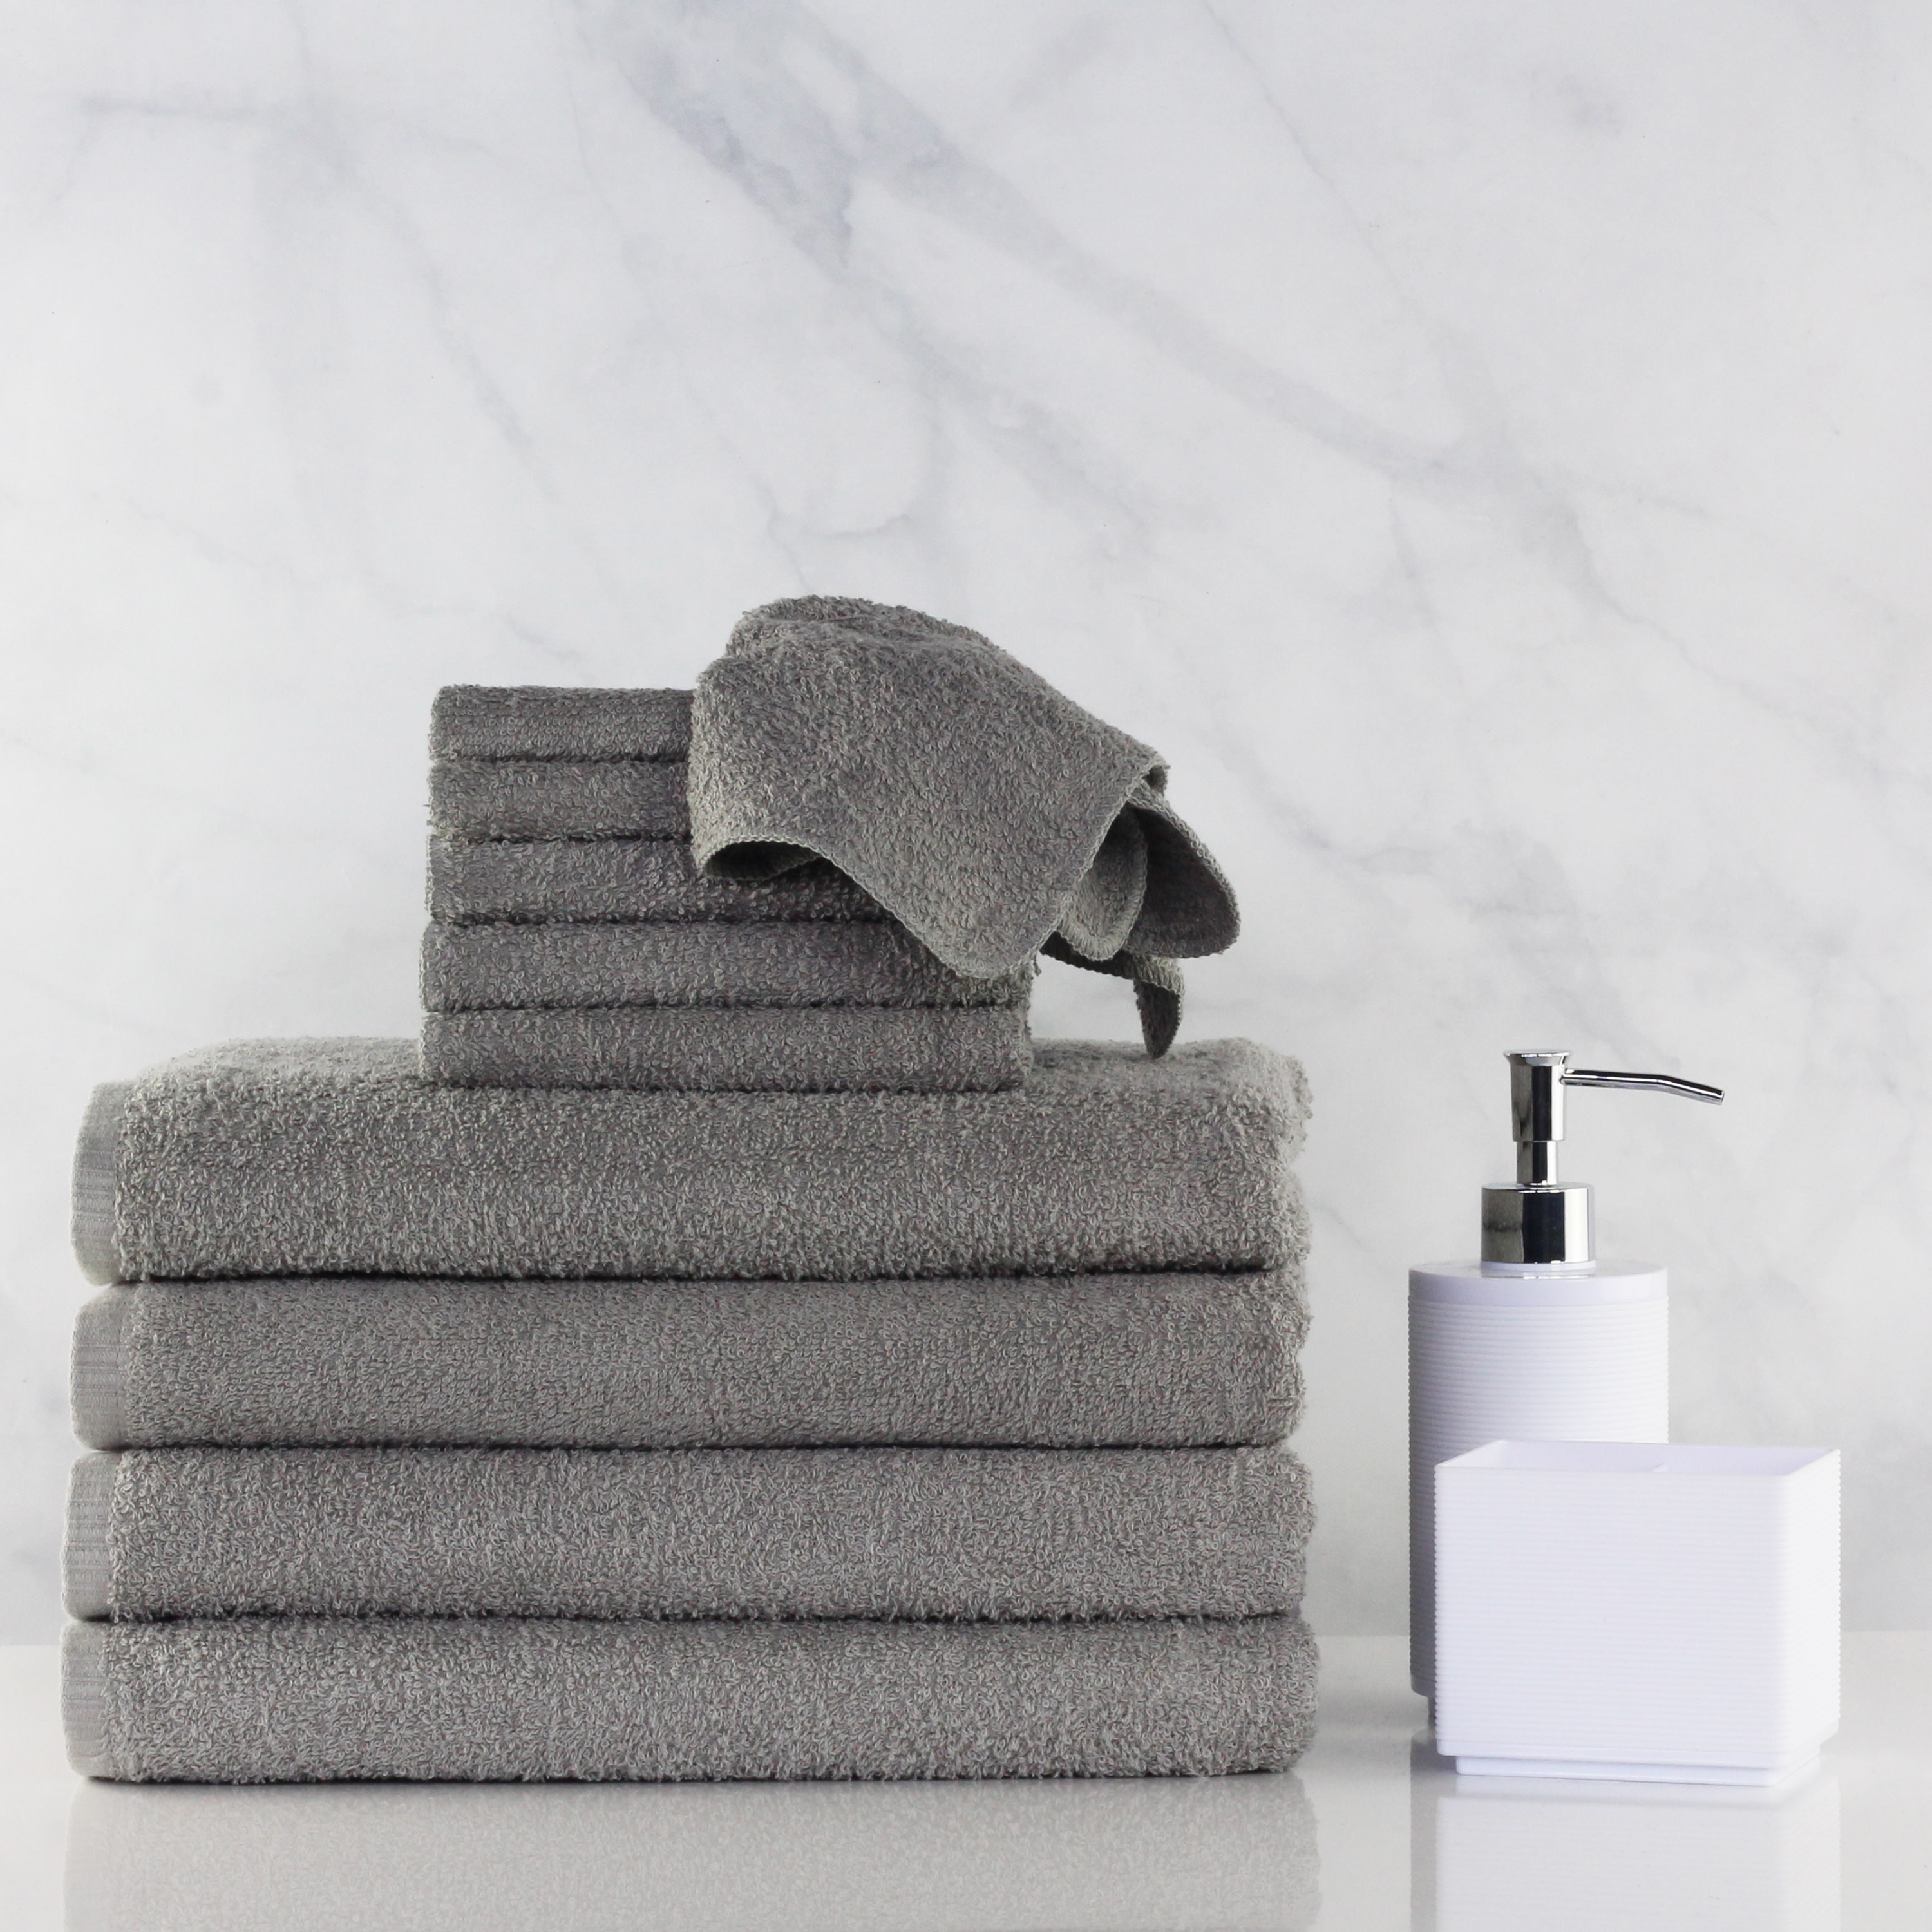 Bath Towel or Washcloths 6 Pack (Store Only)